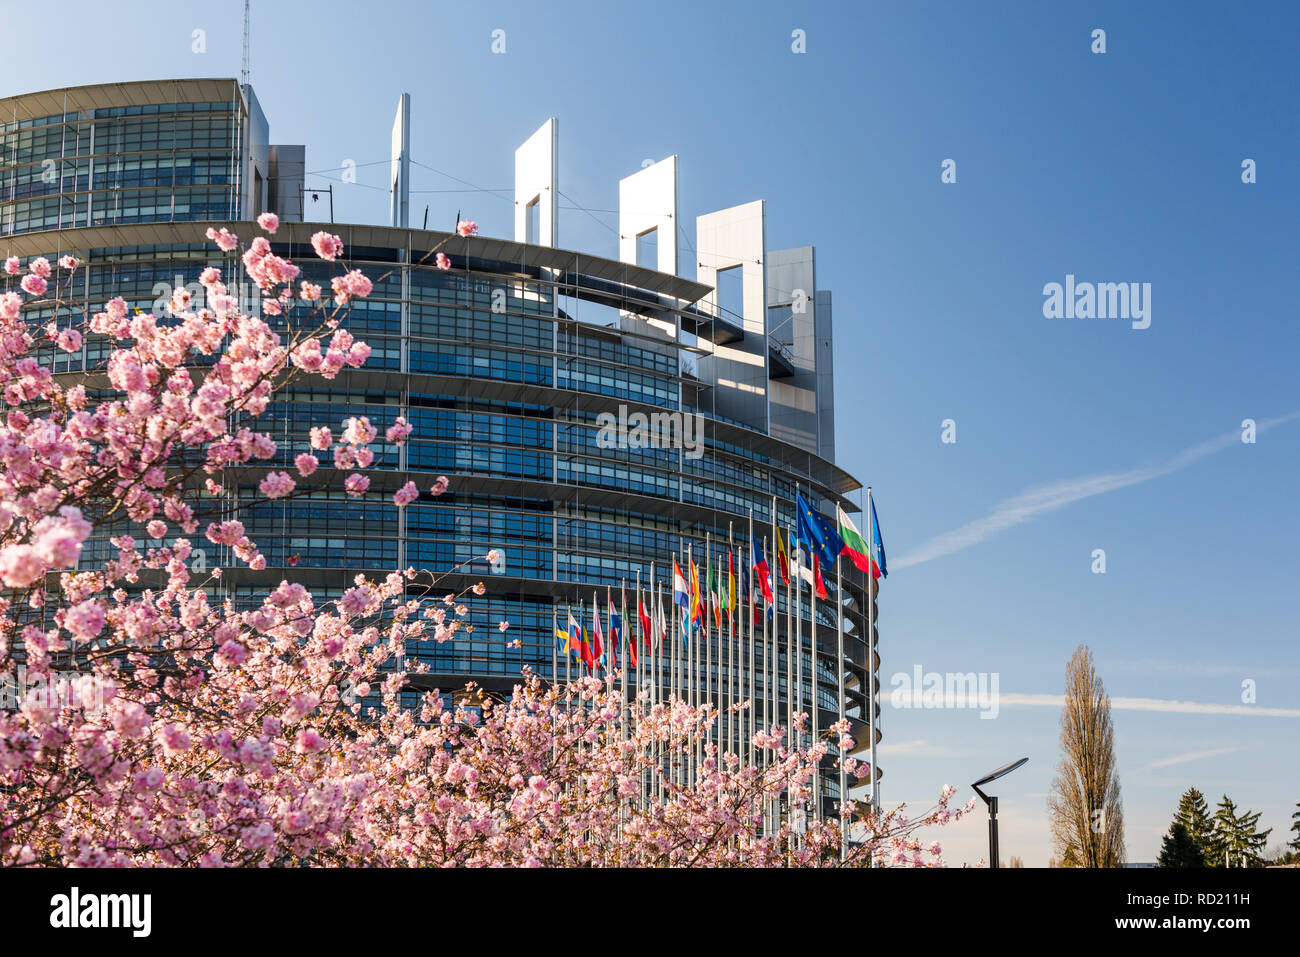 STRASBOURG, FRANCE - APRIL 6, 2018: European Parliament headquarter with cherry tree in bloom sakura flowers on a warm spring morning with all European union flags waving - Stock Image